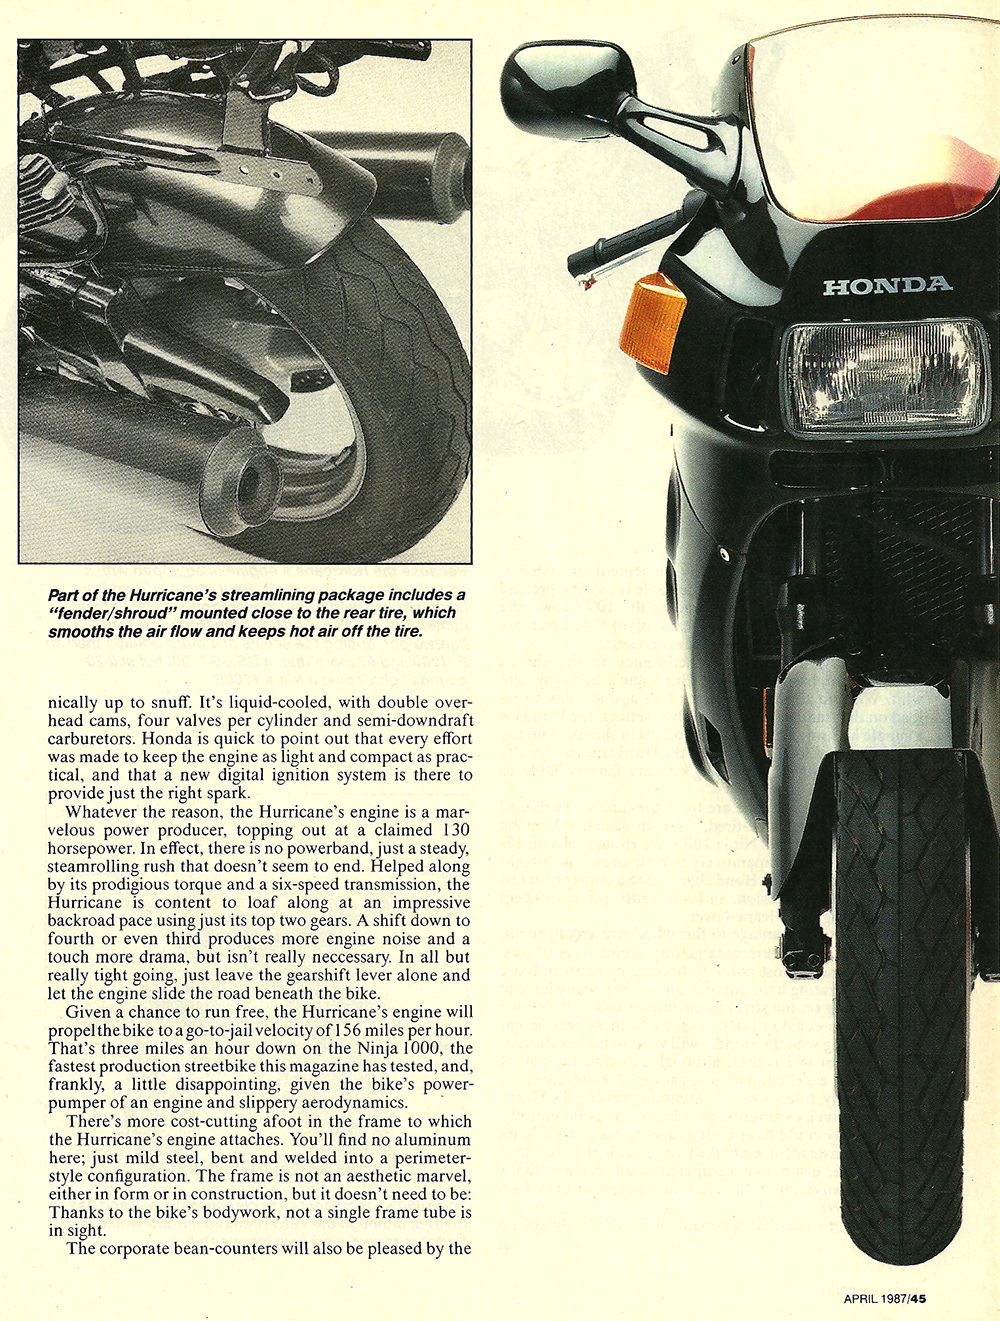 1987 Honda Hurricane 1000 road test 06.jpg